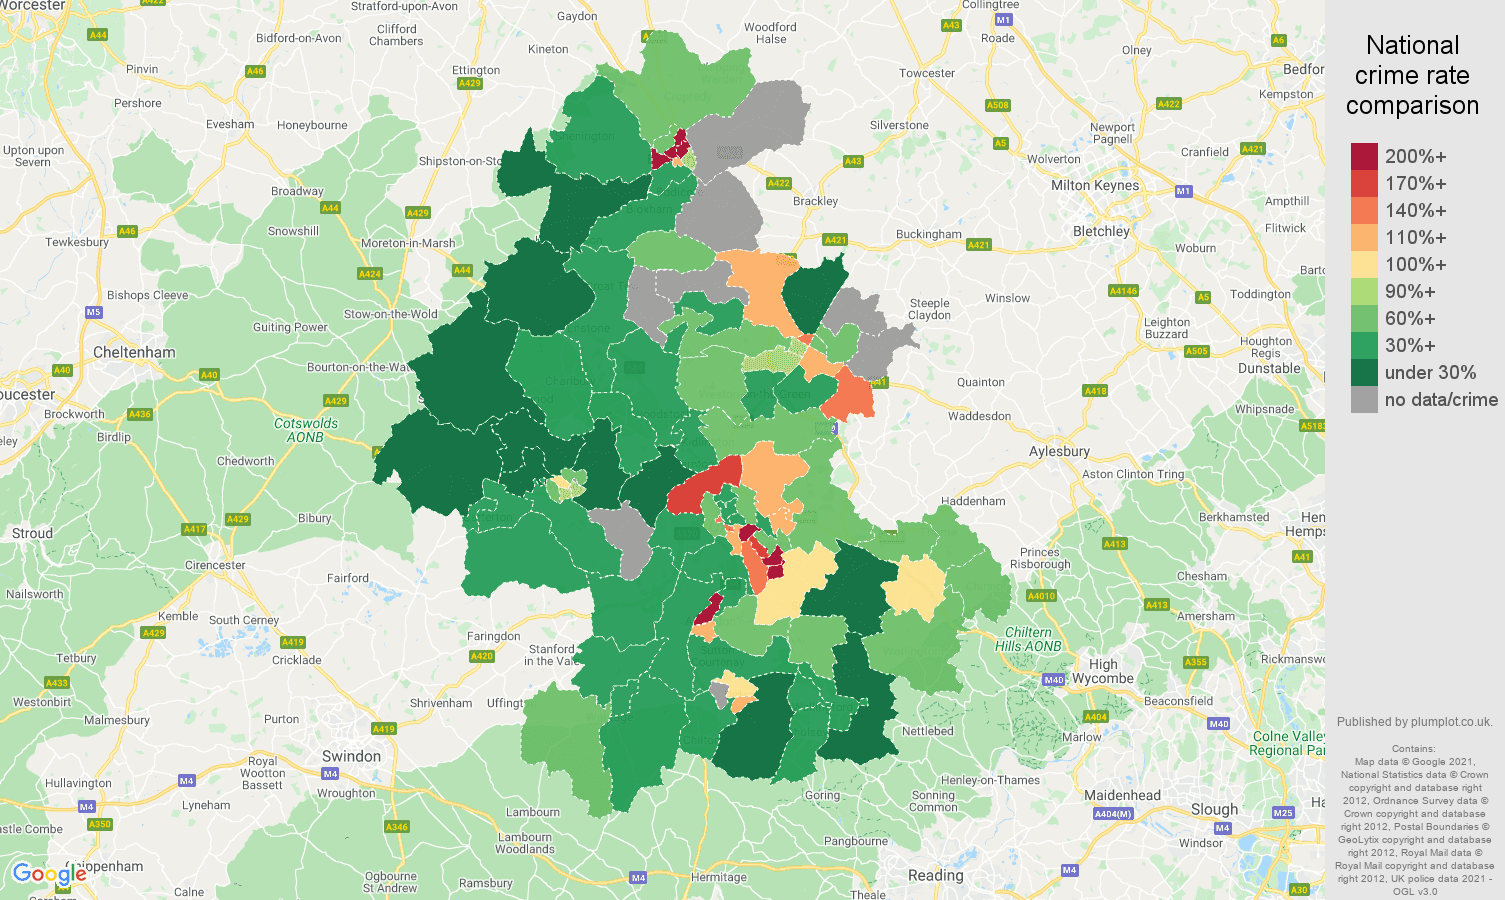 Oxford drugs crime rate comparison map